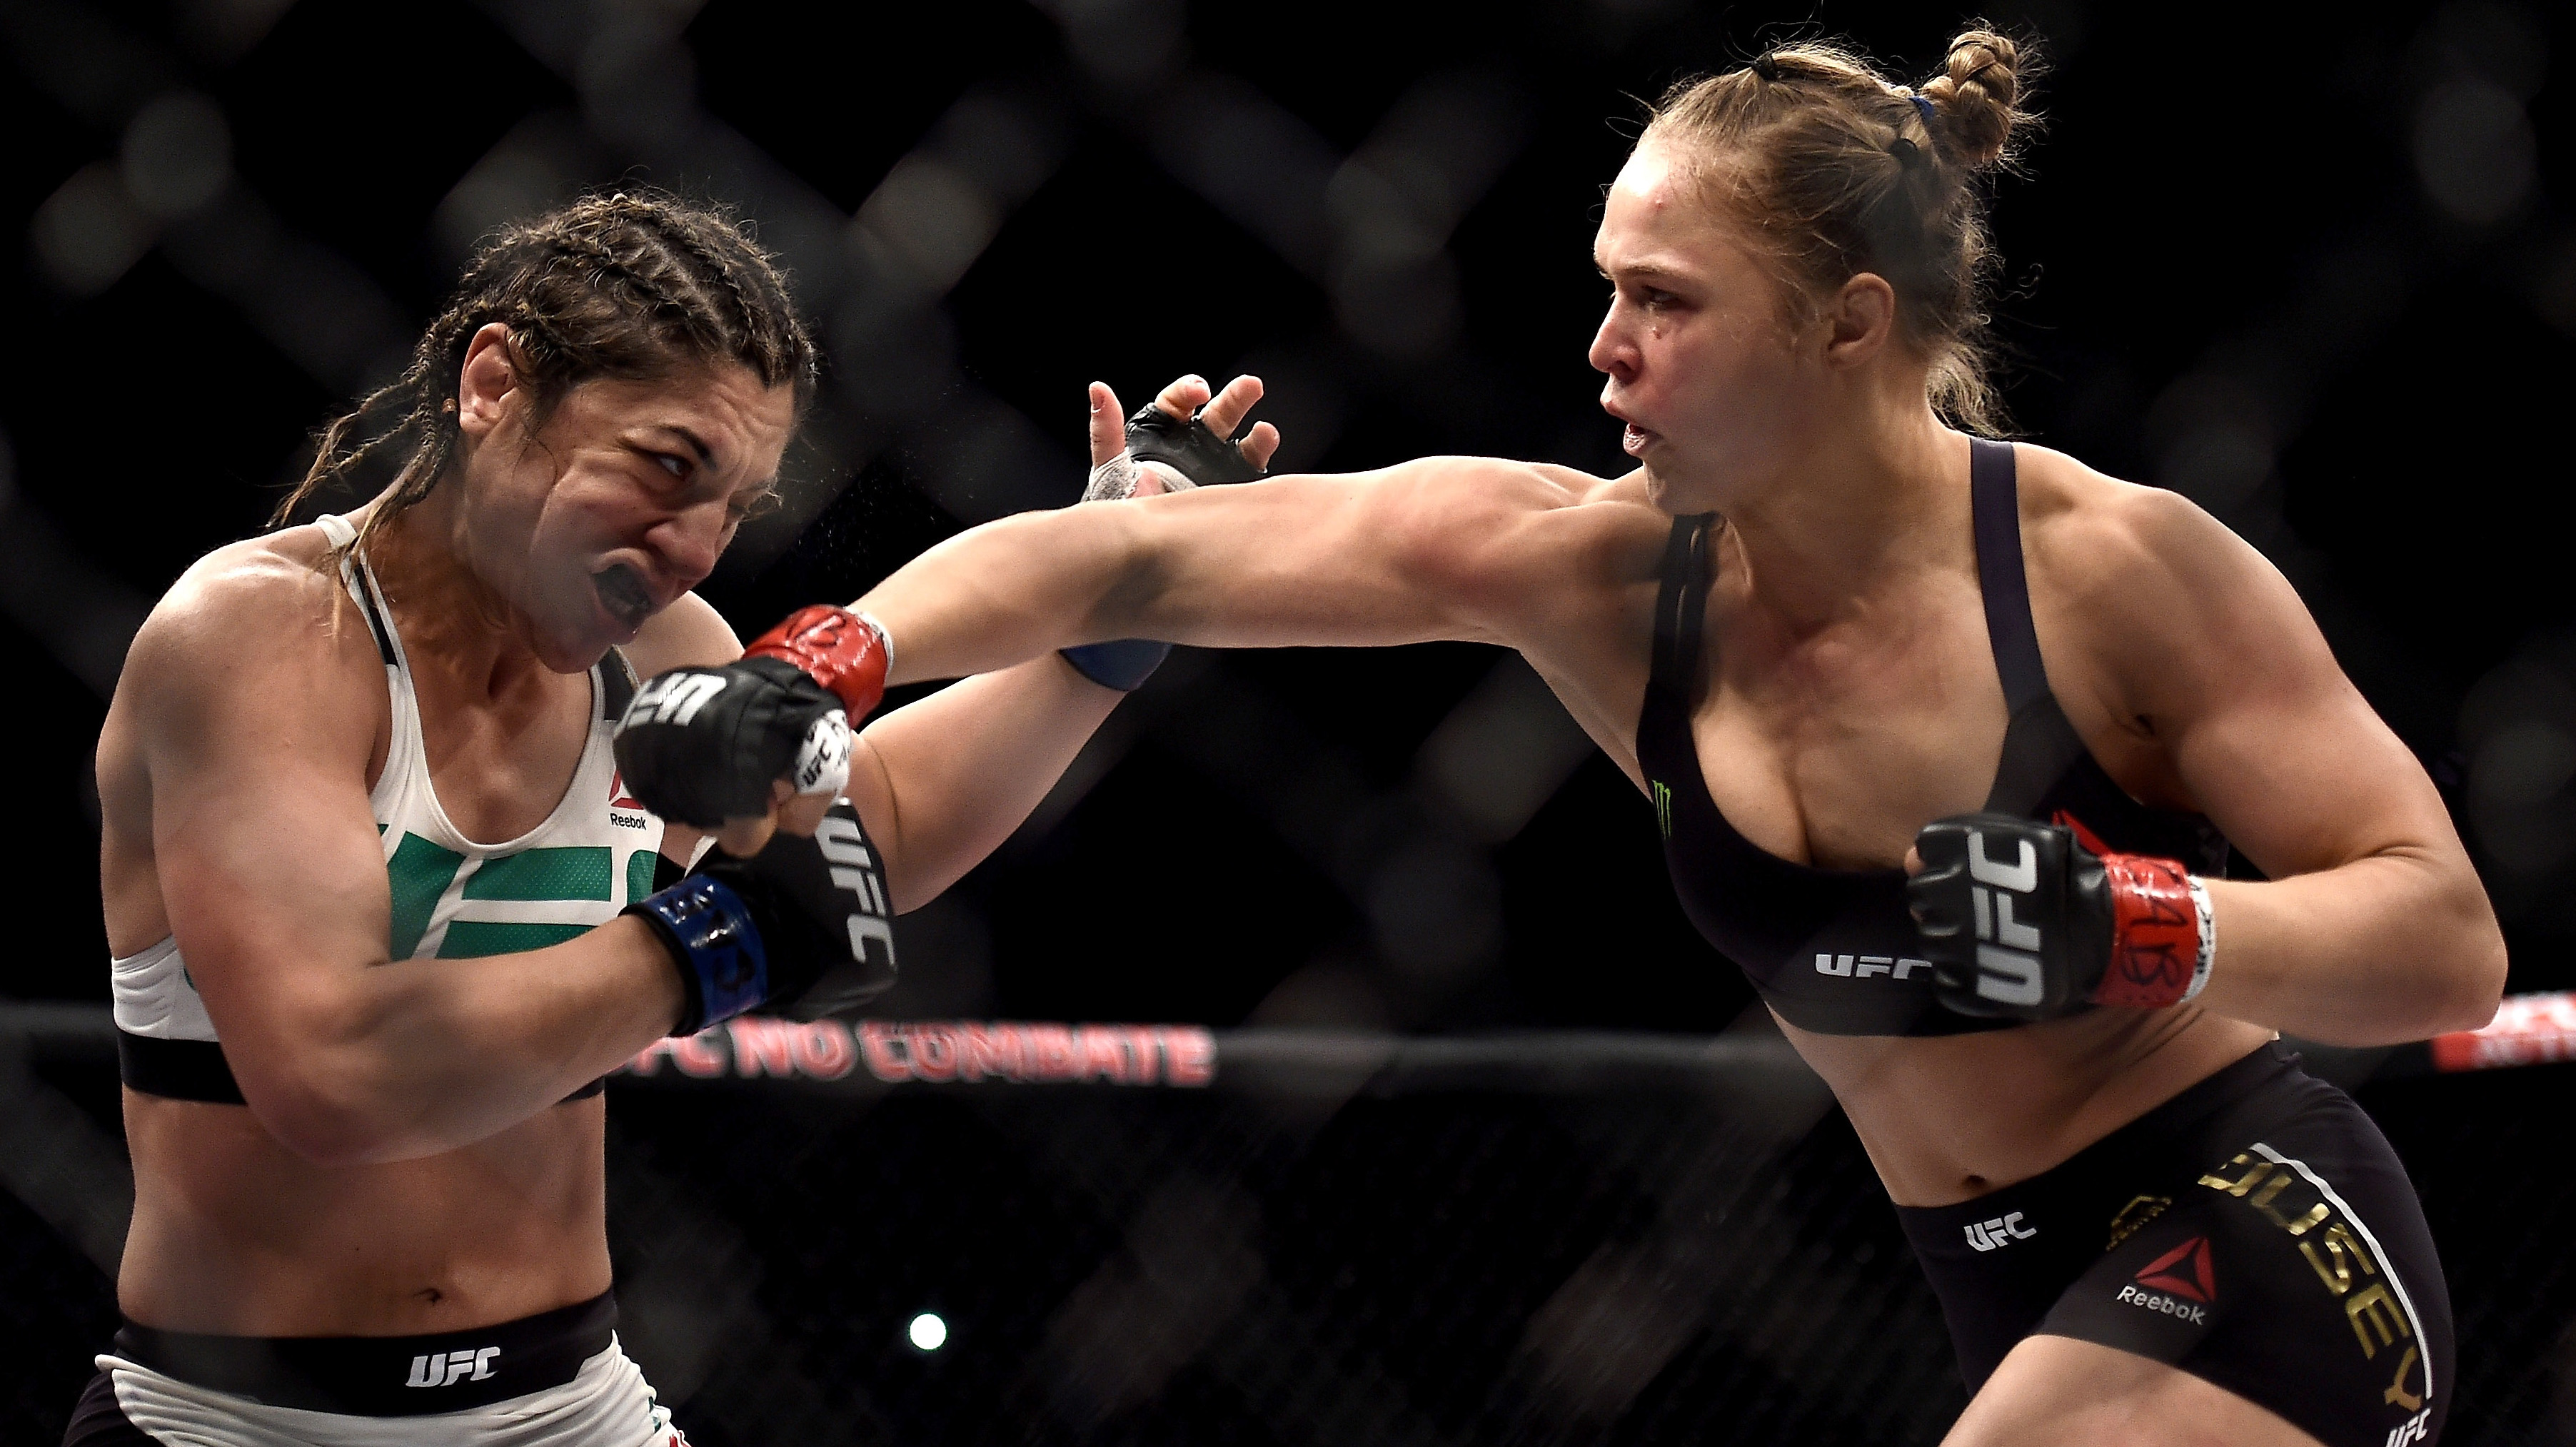 Ronda Rousey of the United States punches Bethe Correia of Brazil in their bantamweight title fight during the UFC 190 Rousey v Correia at HSBC Arena on August 1, 2015 in Rio de Janeiro, Brazil. (Photo by Buda Mendes/Zuffa LLC/Zuffa LLC via Getty Images)